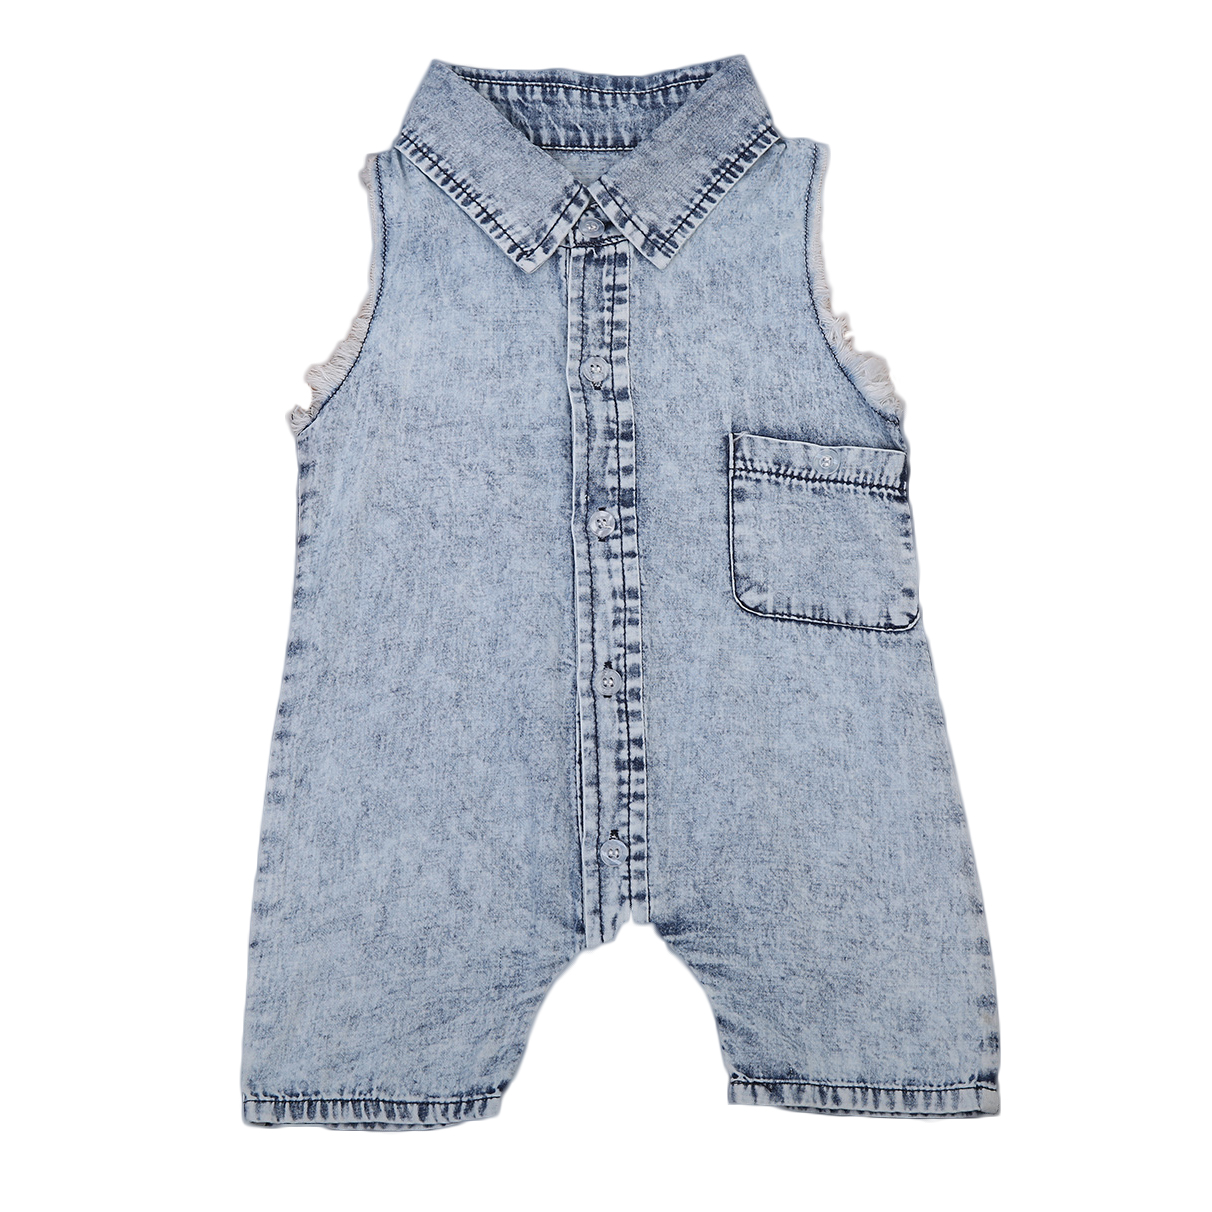 Newborn Baby Boys Kids Sleeveless Denim Romper Jumpsuit Playsuit Toddler Summer Clothes One-Pieces Outfits 2016 hot selling baby kids girls one piece sleeveless heart dots bib playsuit jumpsuit t shirt pants outfit clothes 2 7y